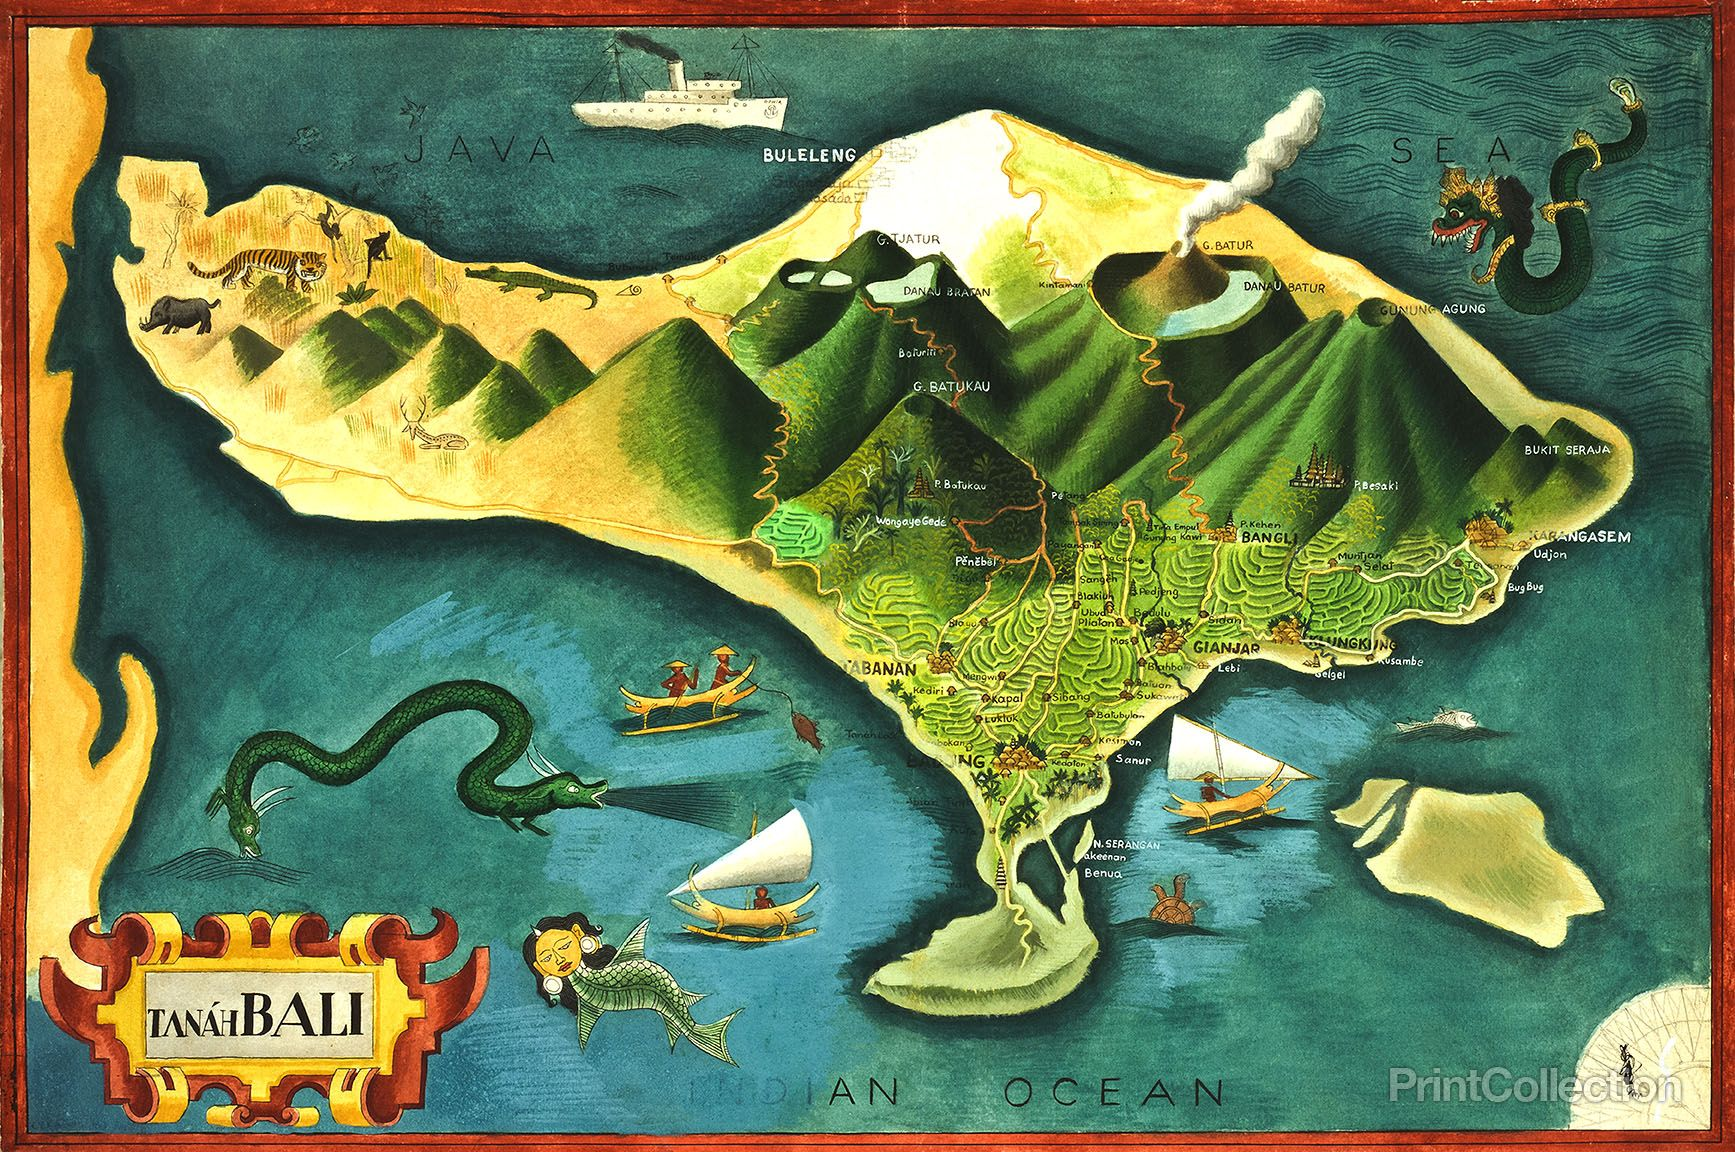 Carte Bali Pemuteran.Map Of Bali What We Love About Bali Bali Bali Indonesia